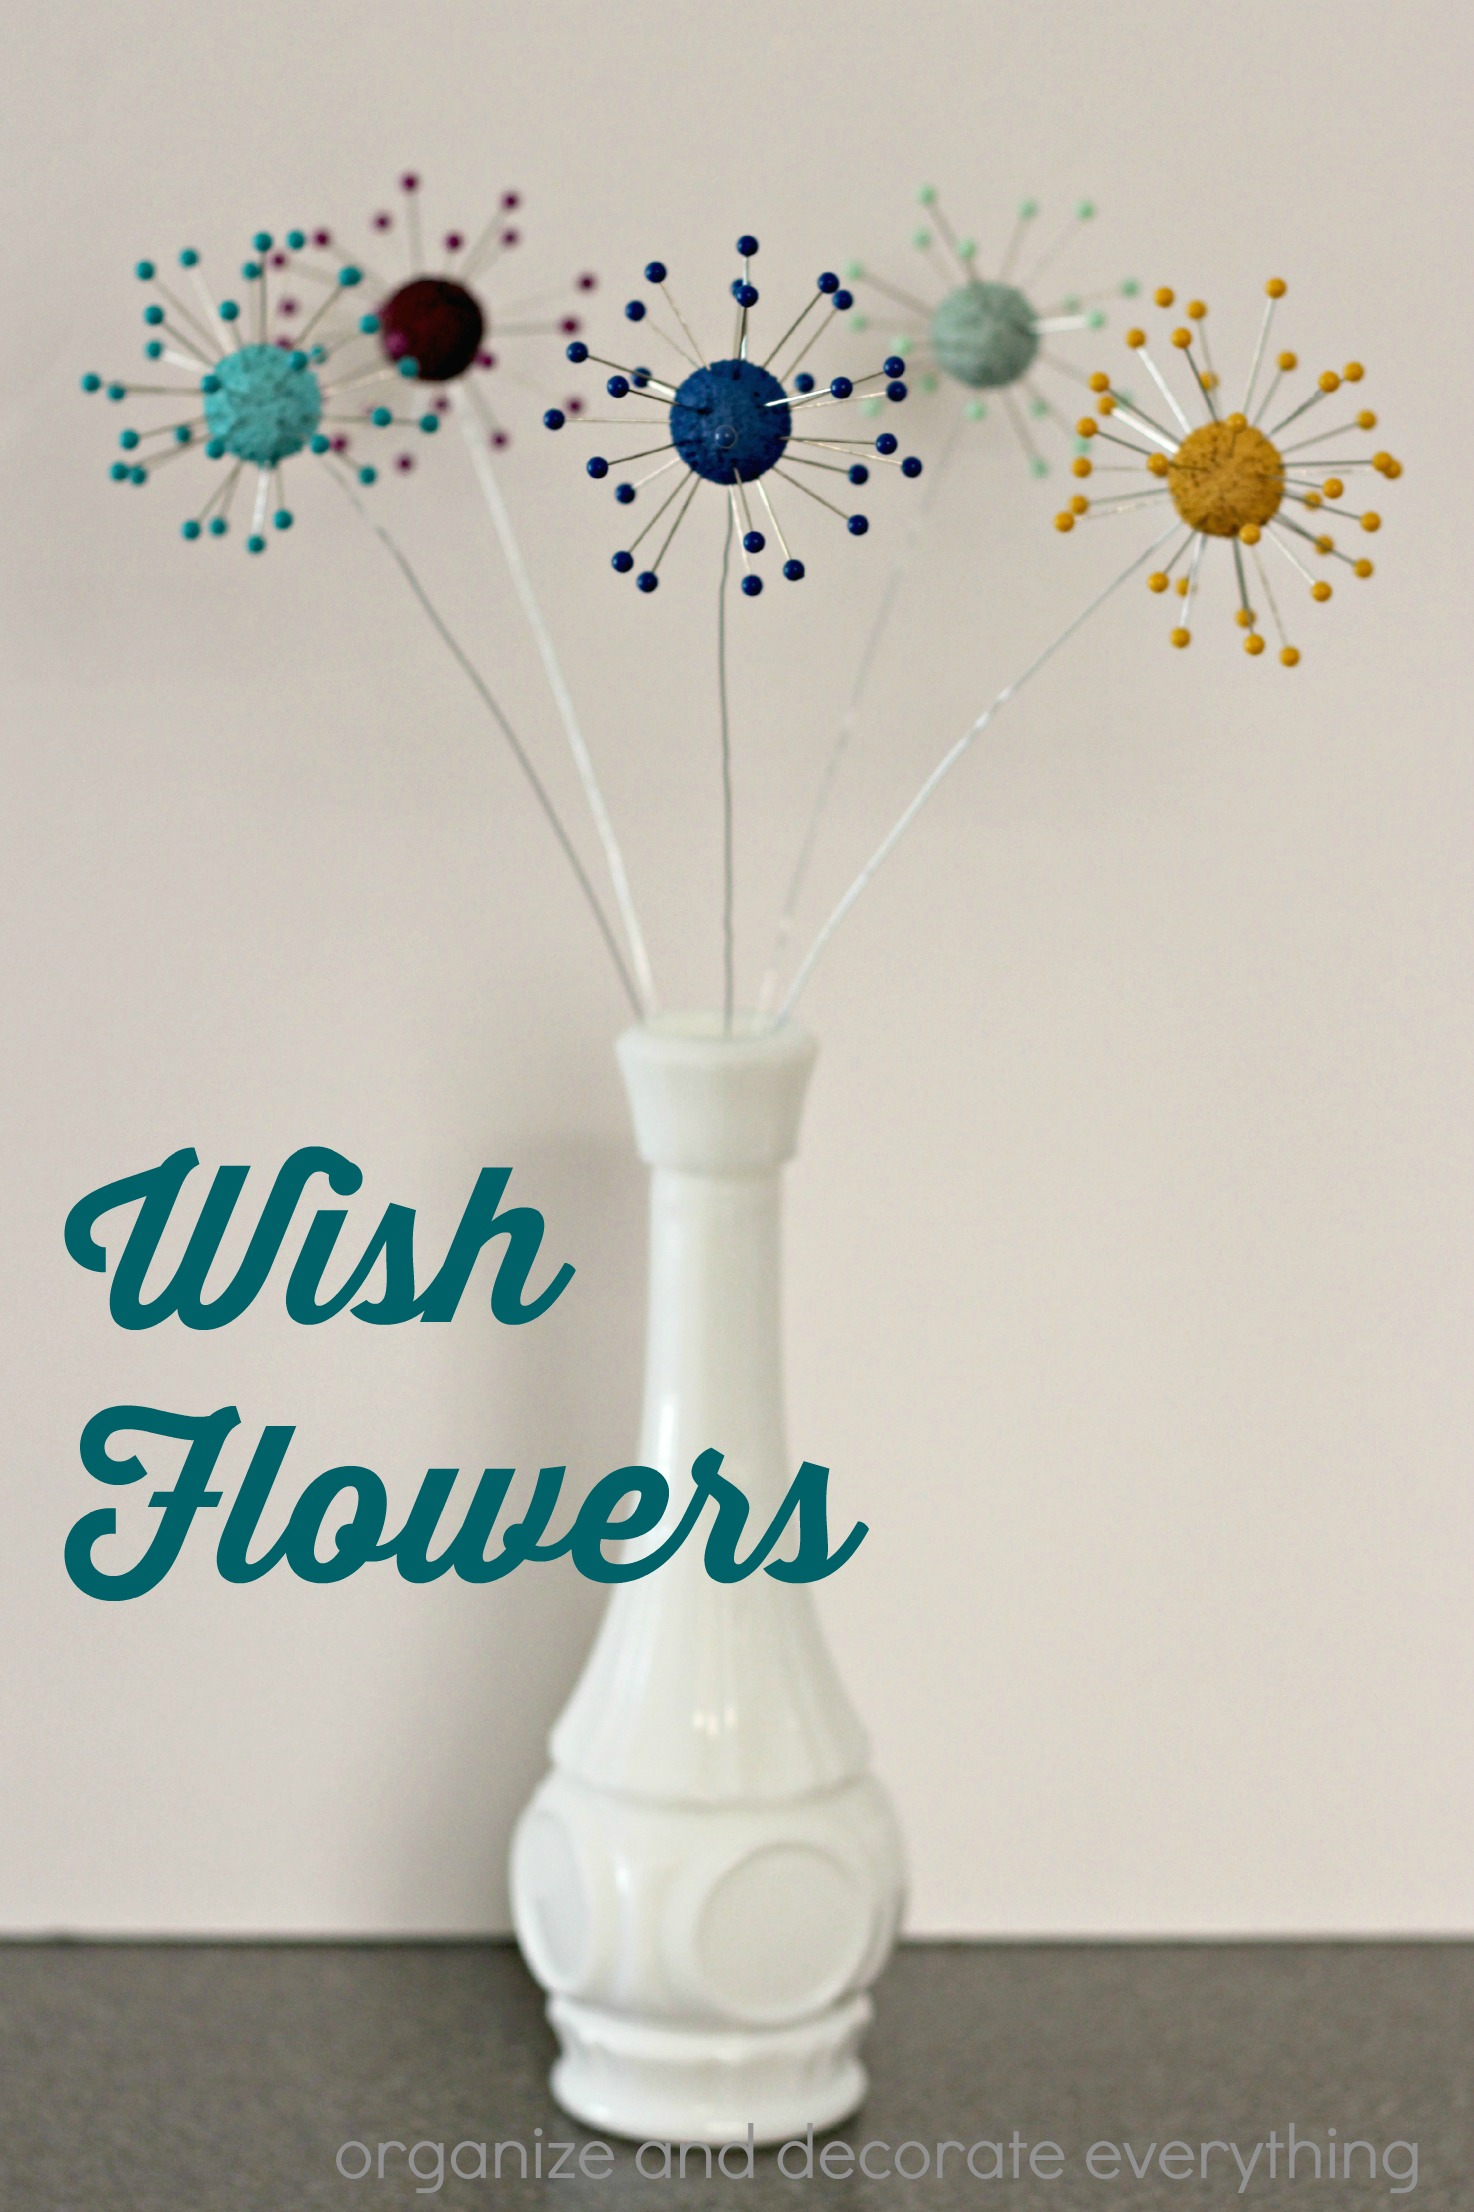 Wish Flowers Organize and Decorate Everything